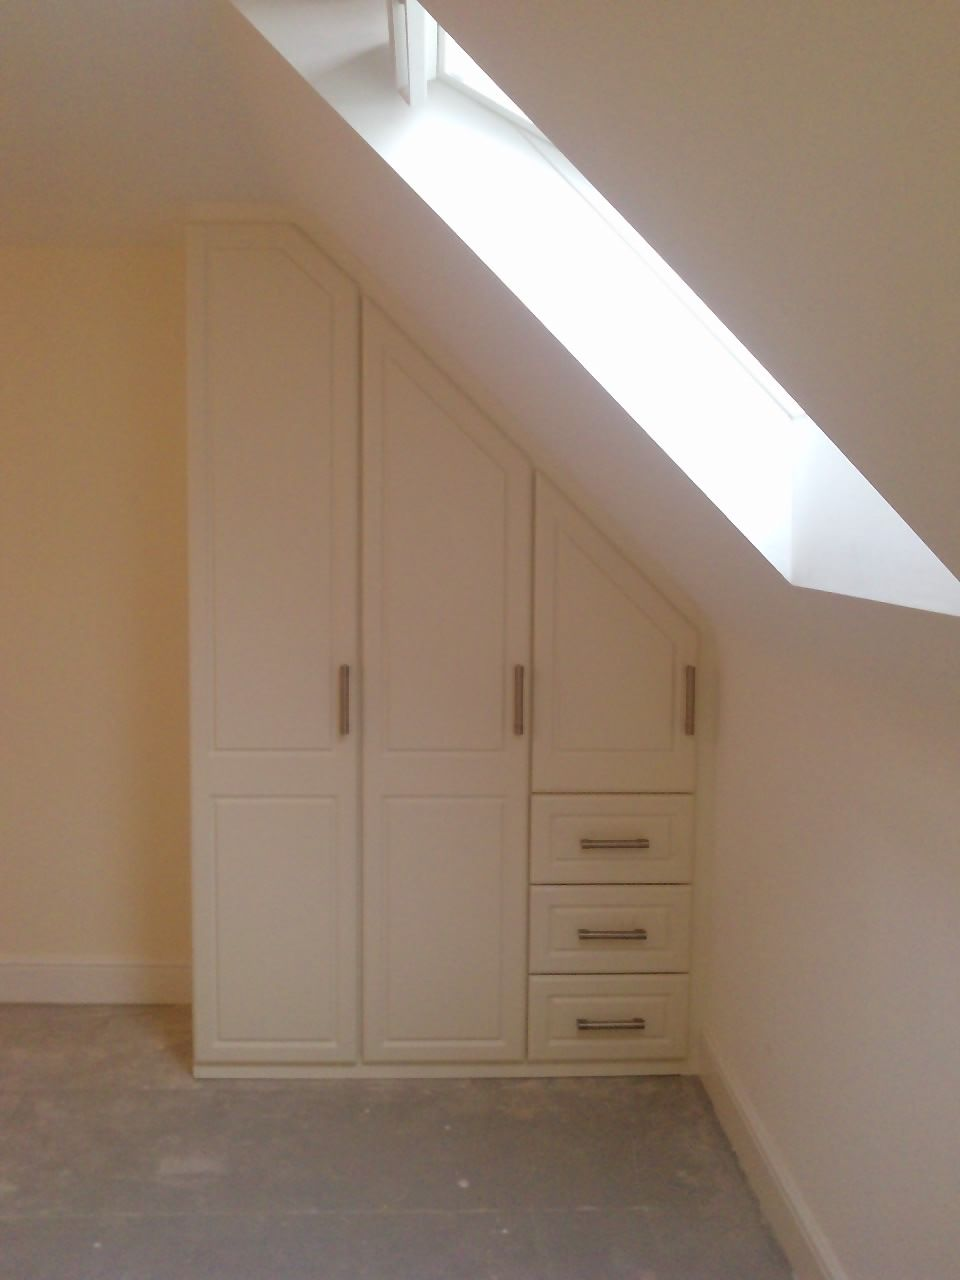 A Small Wardrobe In A Loft Conversion Showing Angled Doors Wwwharmonymadetomeasurecouk Hus